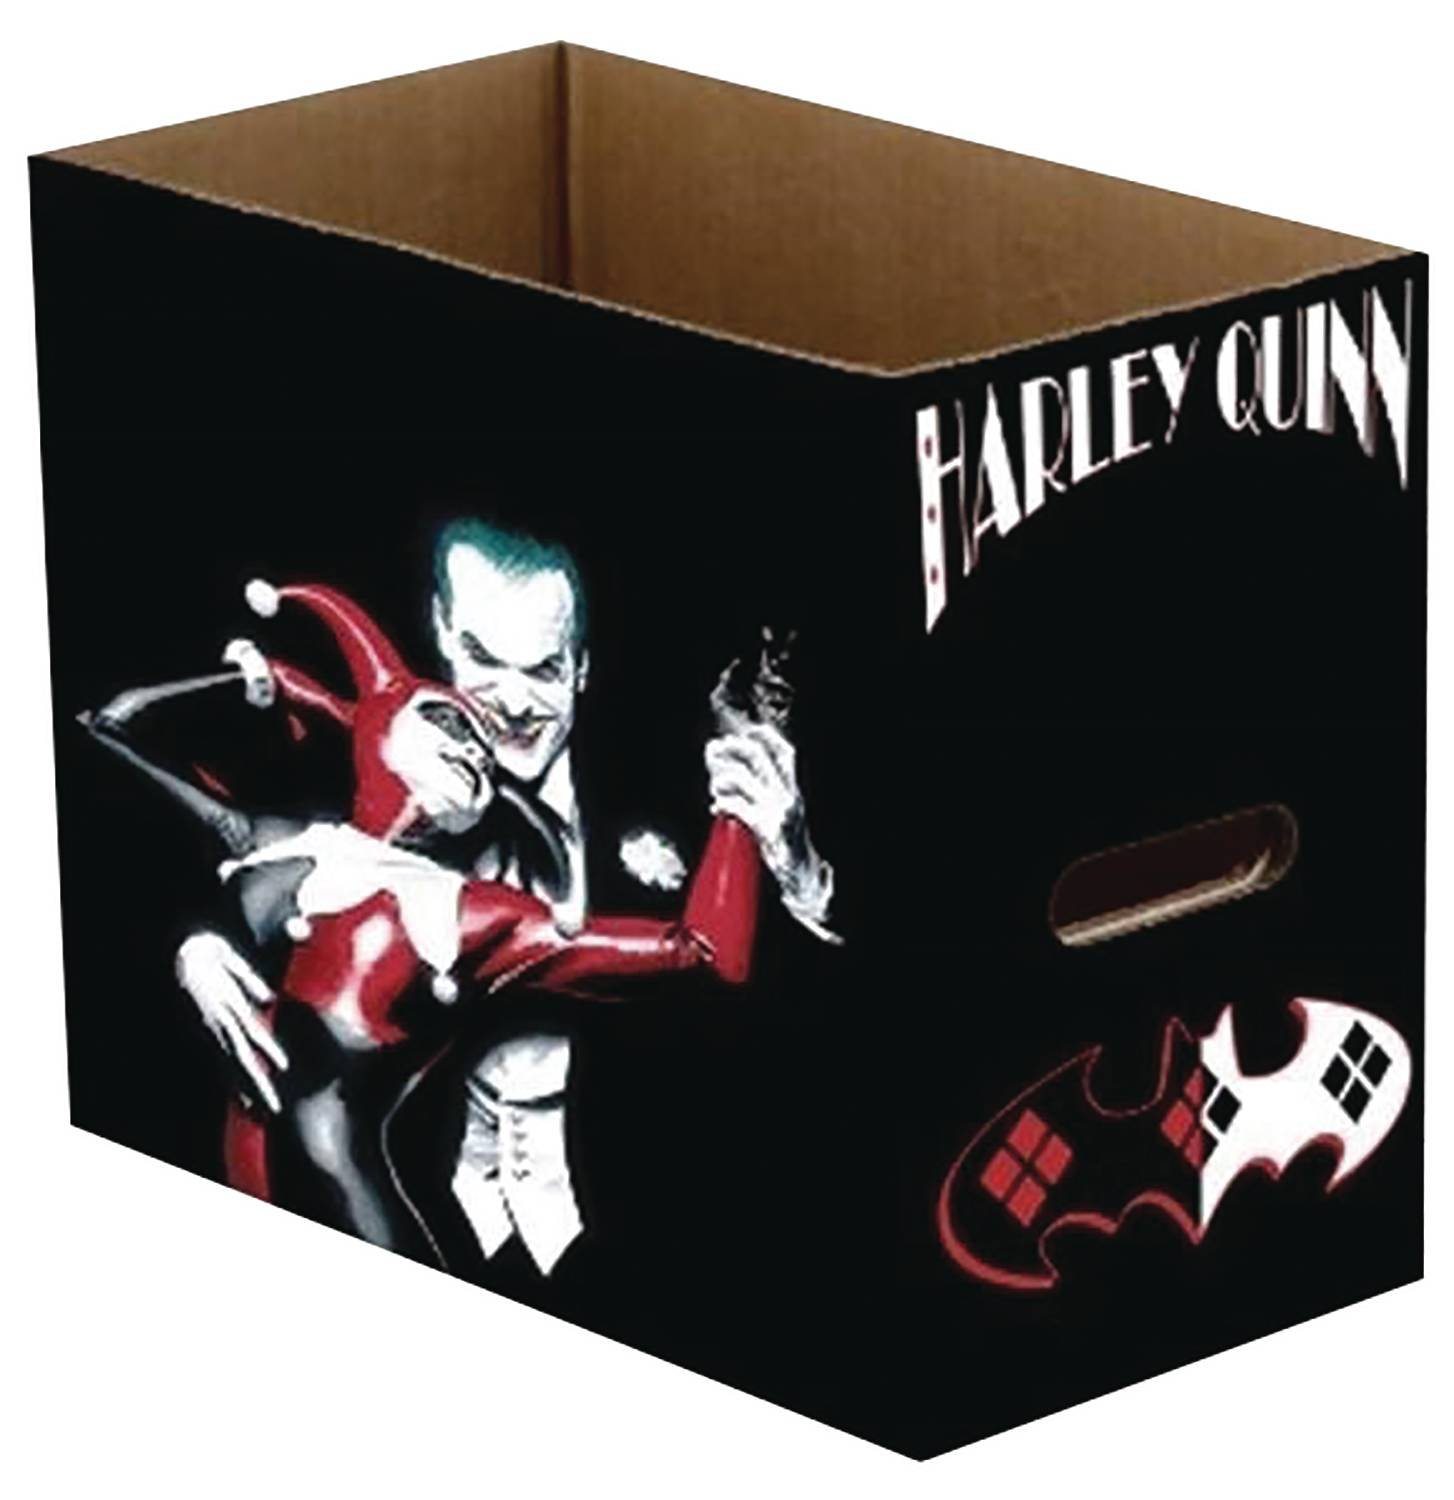 DC Comics Joker and Harley Quinn Short Comics Storage Box by Diamond Comics Distribution